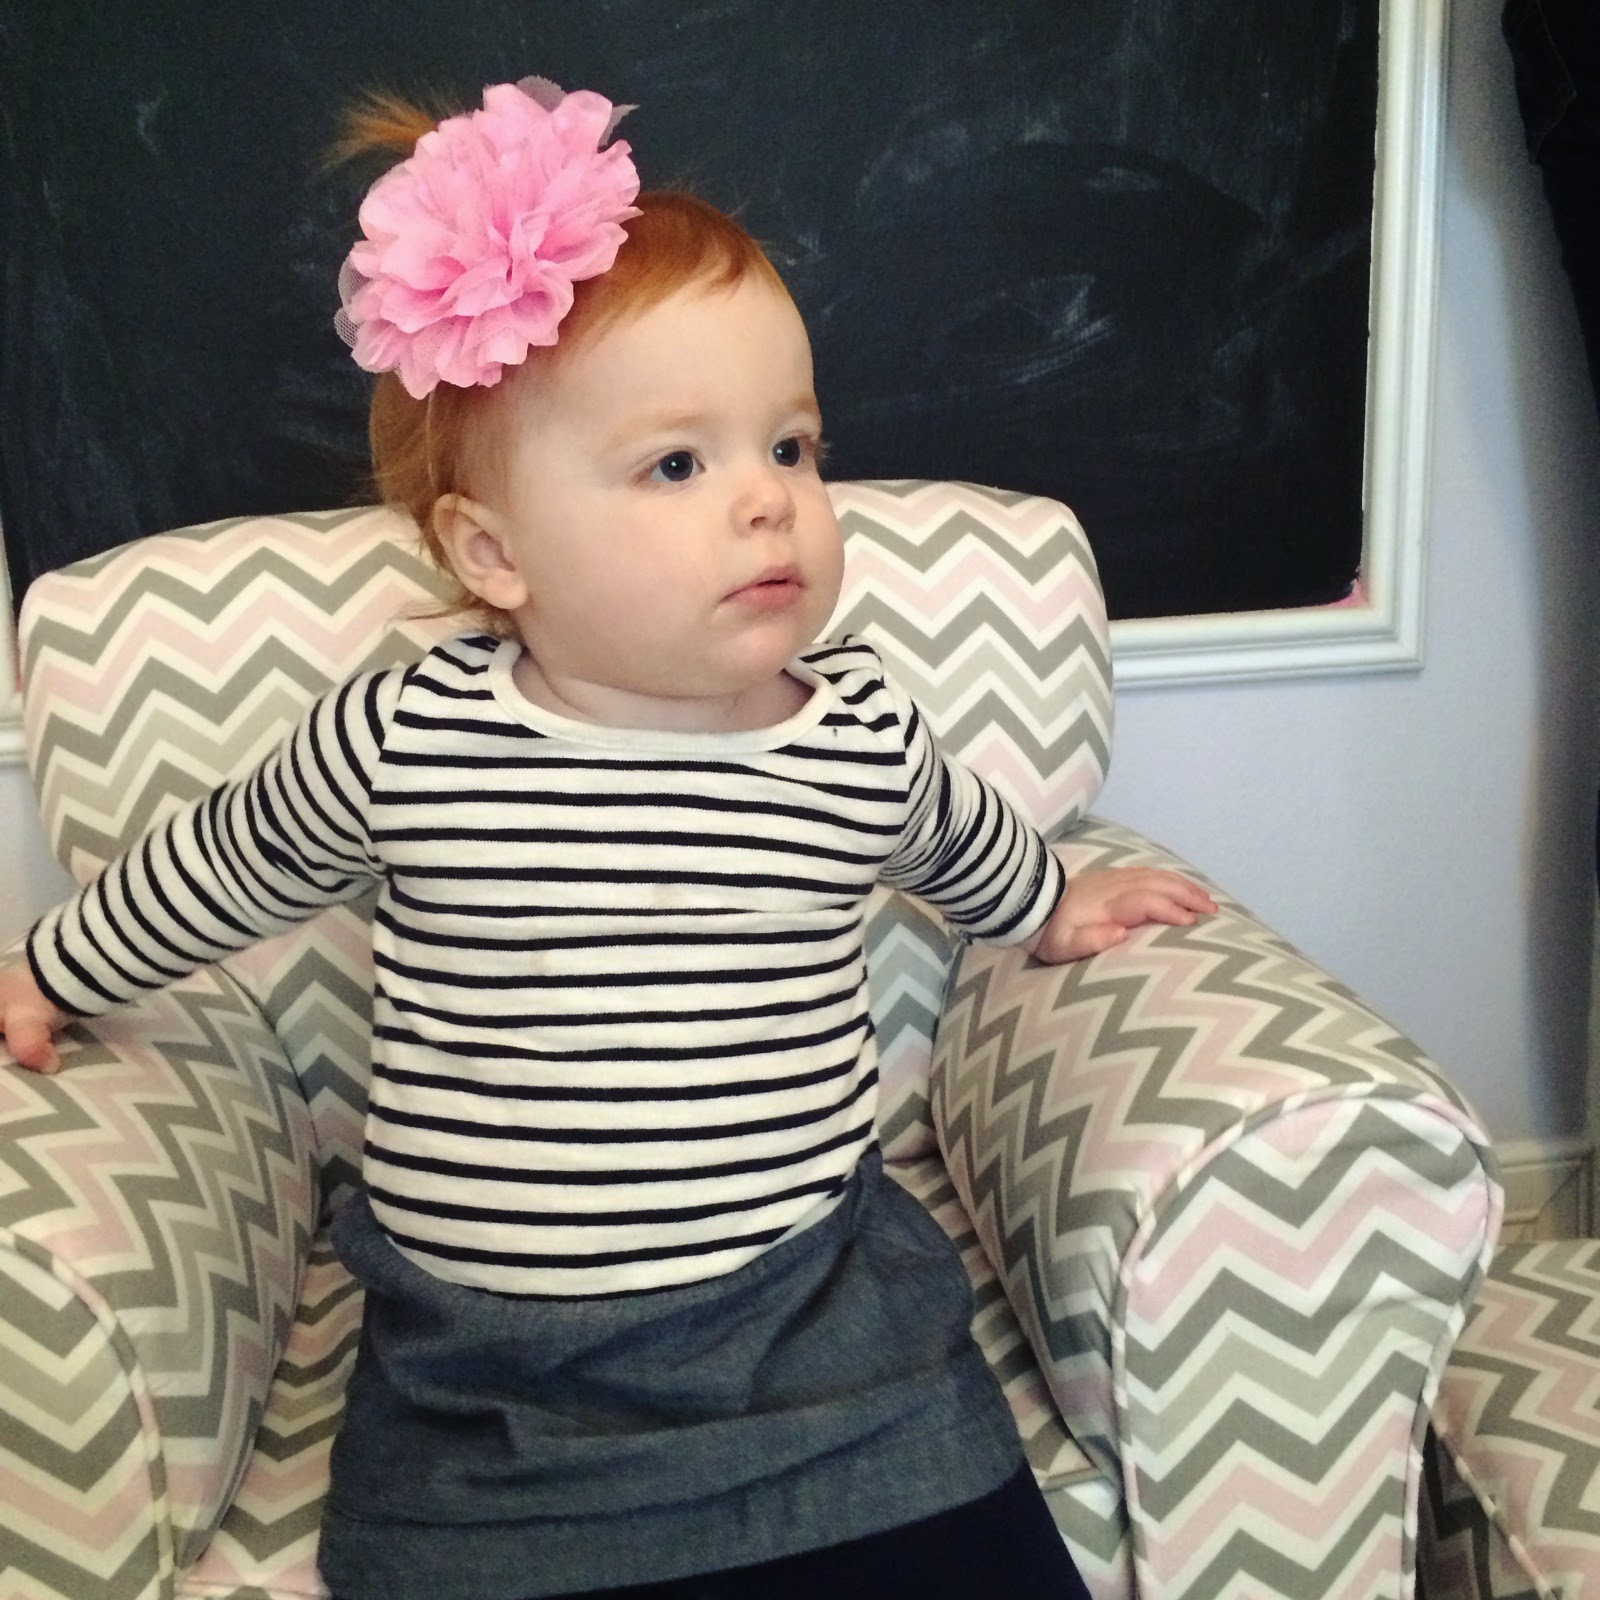 Veronika S Blushing Harper S Nursery Updated: Today We Went To Amanda's House For A Play-date. There